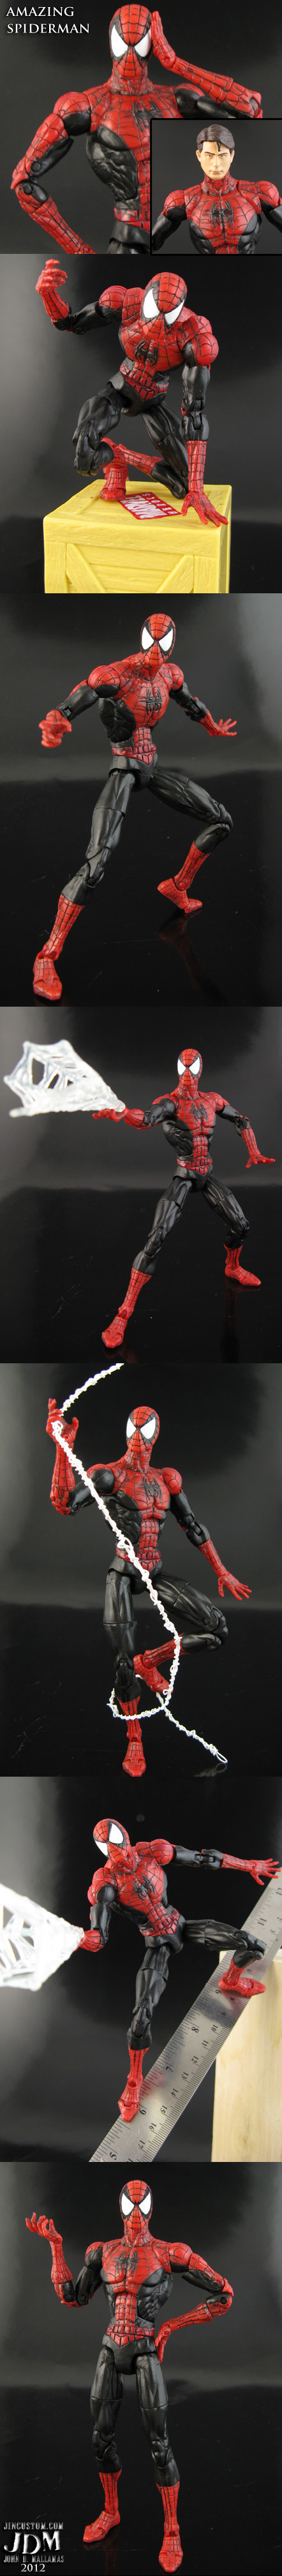 Custom Spiderman Figure